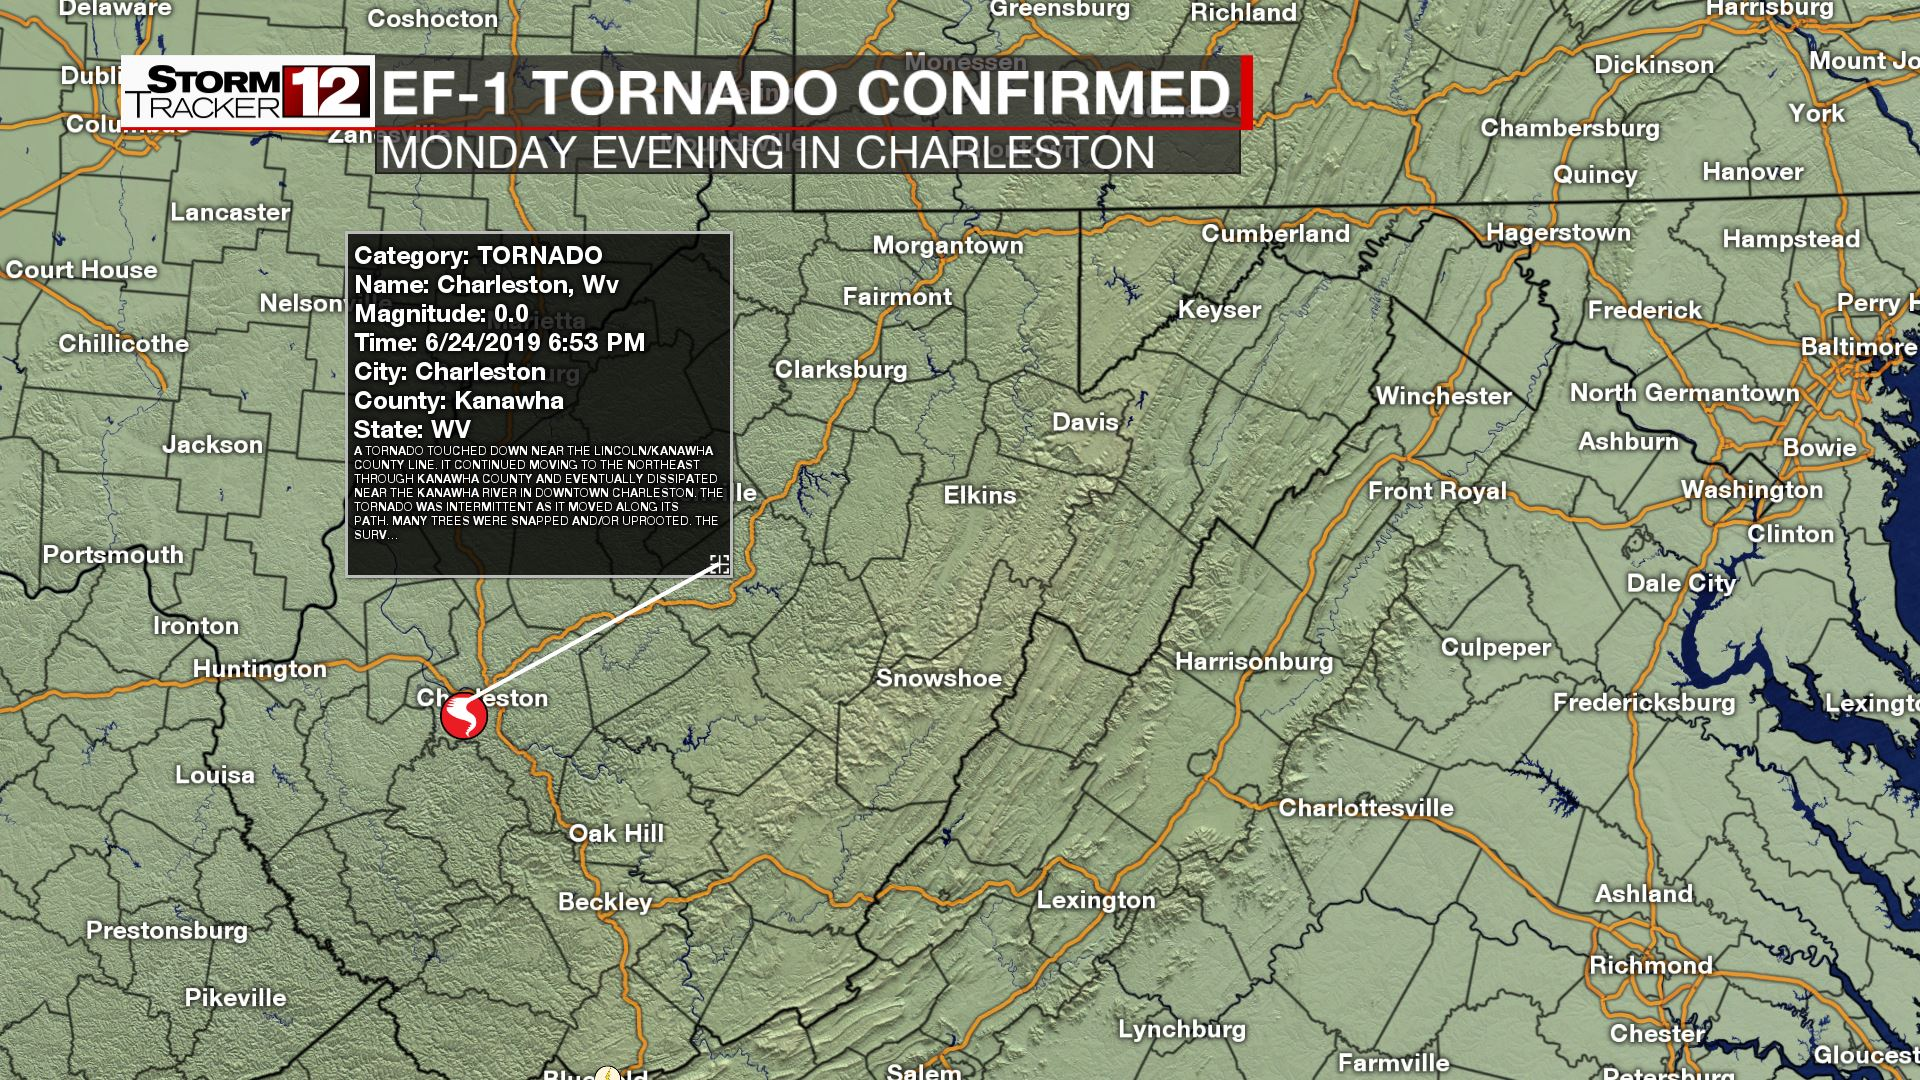 Tornado confirmed in Charleston Monday night | WBOY on map england counties, new jersey county, los angeles county, illinois county, texas map county, new york county, early county, map south carolina, texas by county, middle east county,